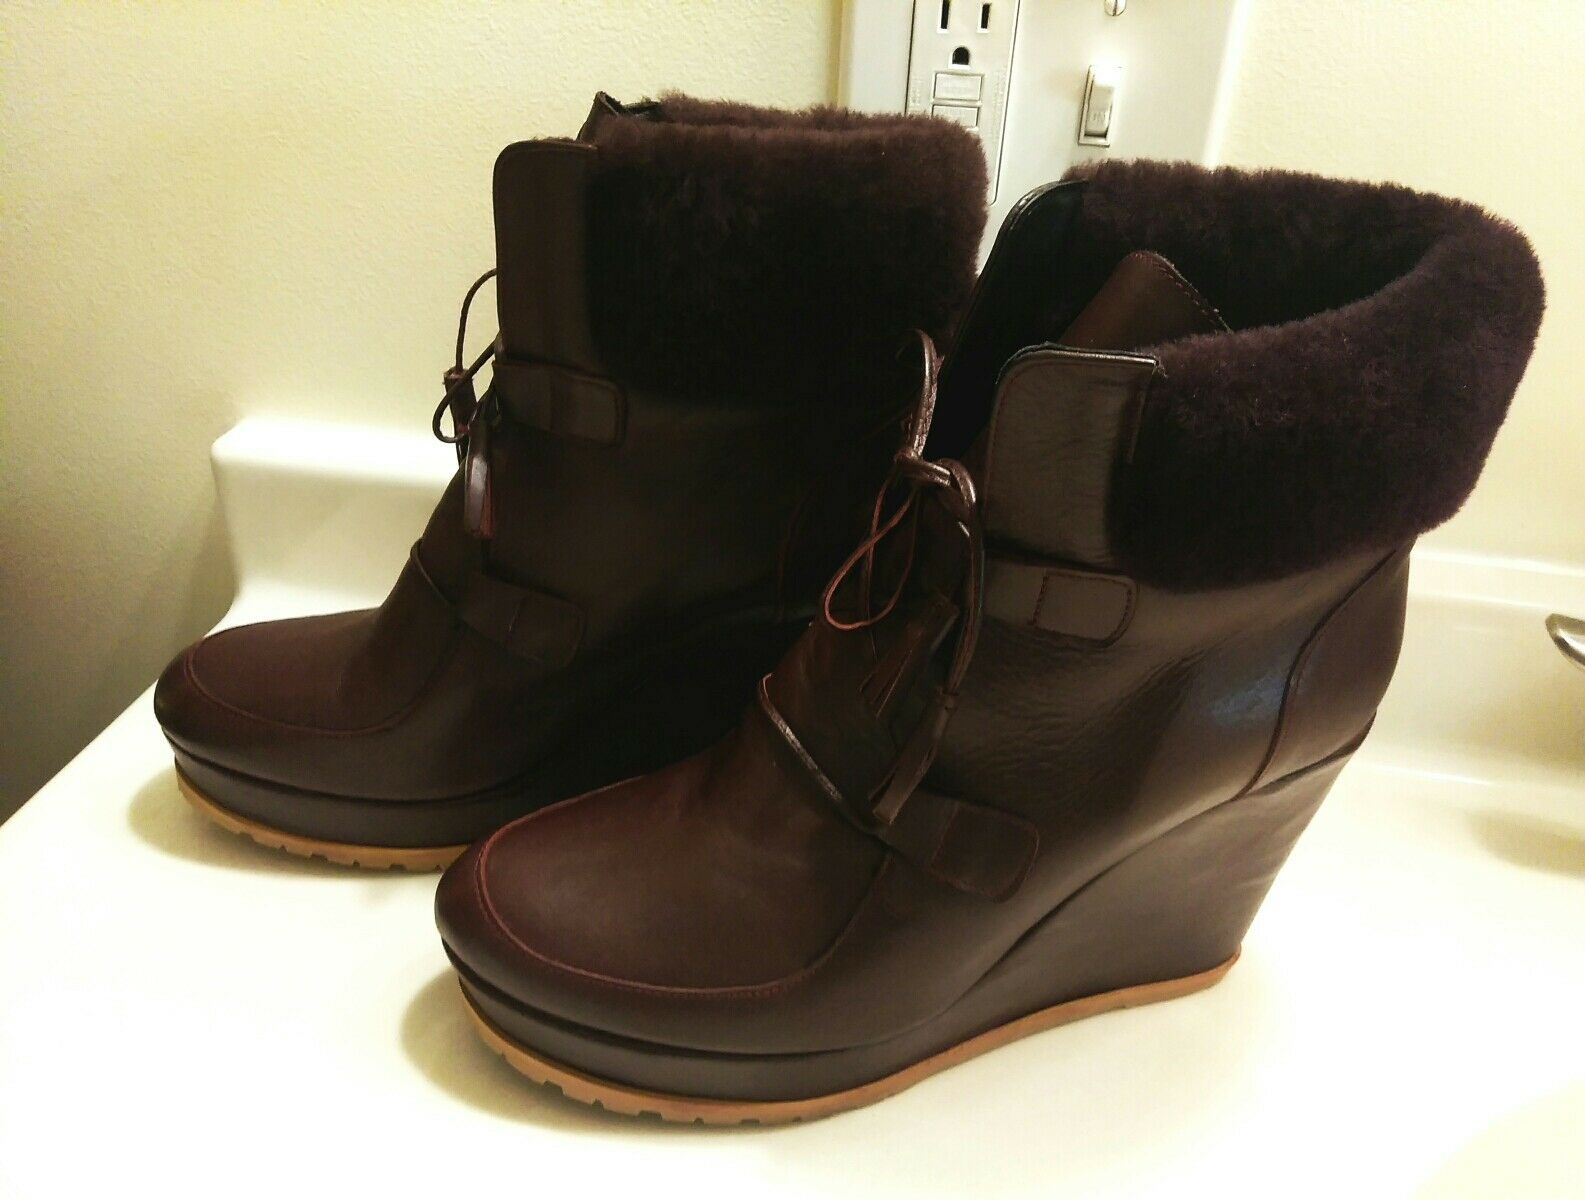 400 LAFAYETTE GALLERIES LAFAYETTE 400 PARIS WOMEN'S FUR LEATHER ANKLE Stiefel Schuhe SZ 40 US 9 39d225